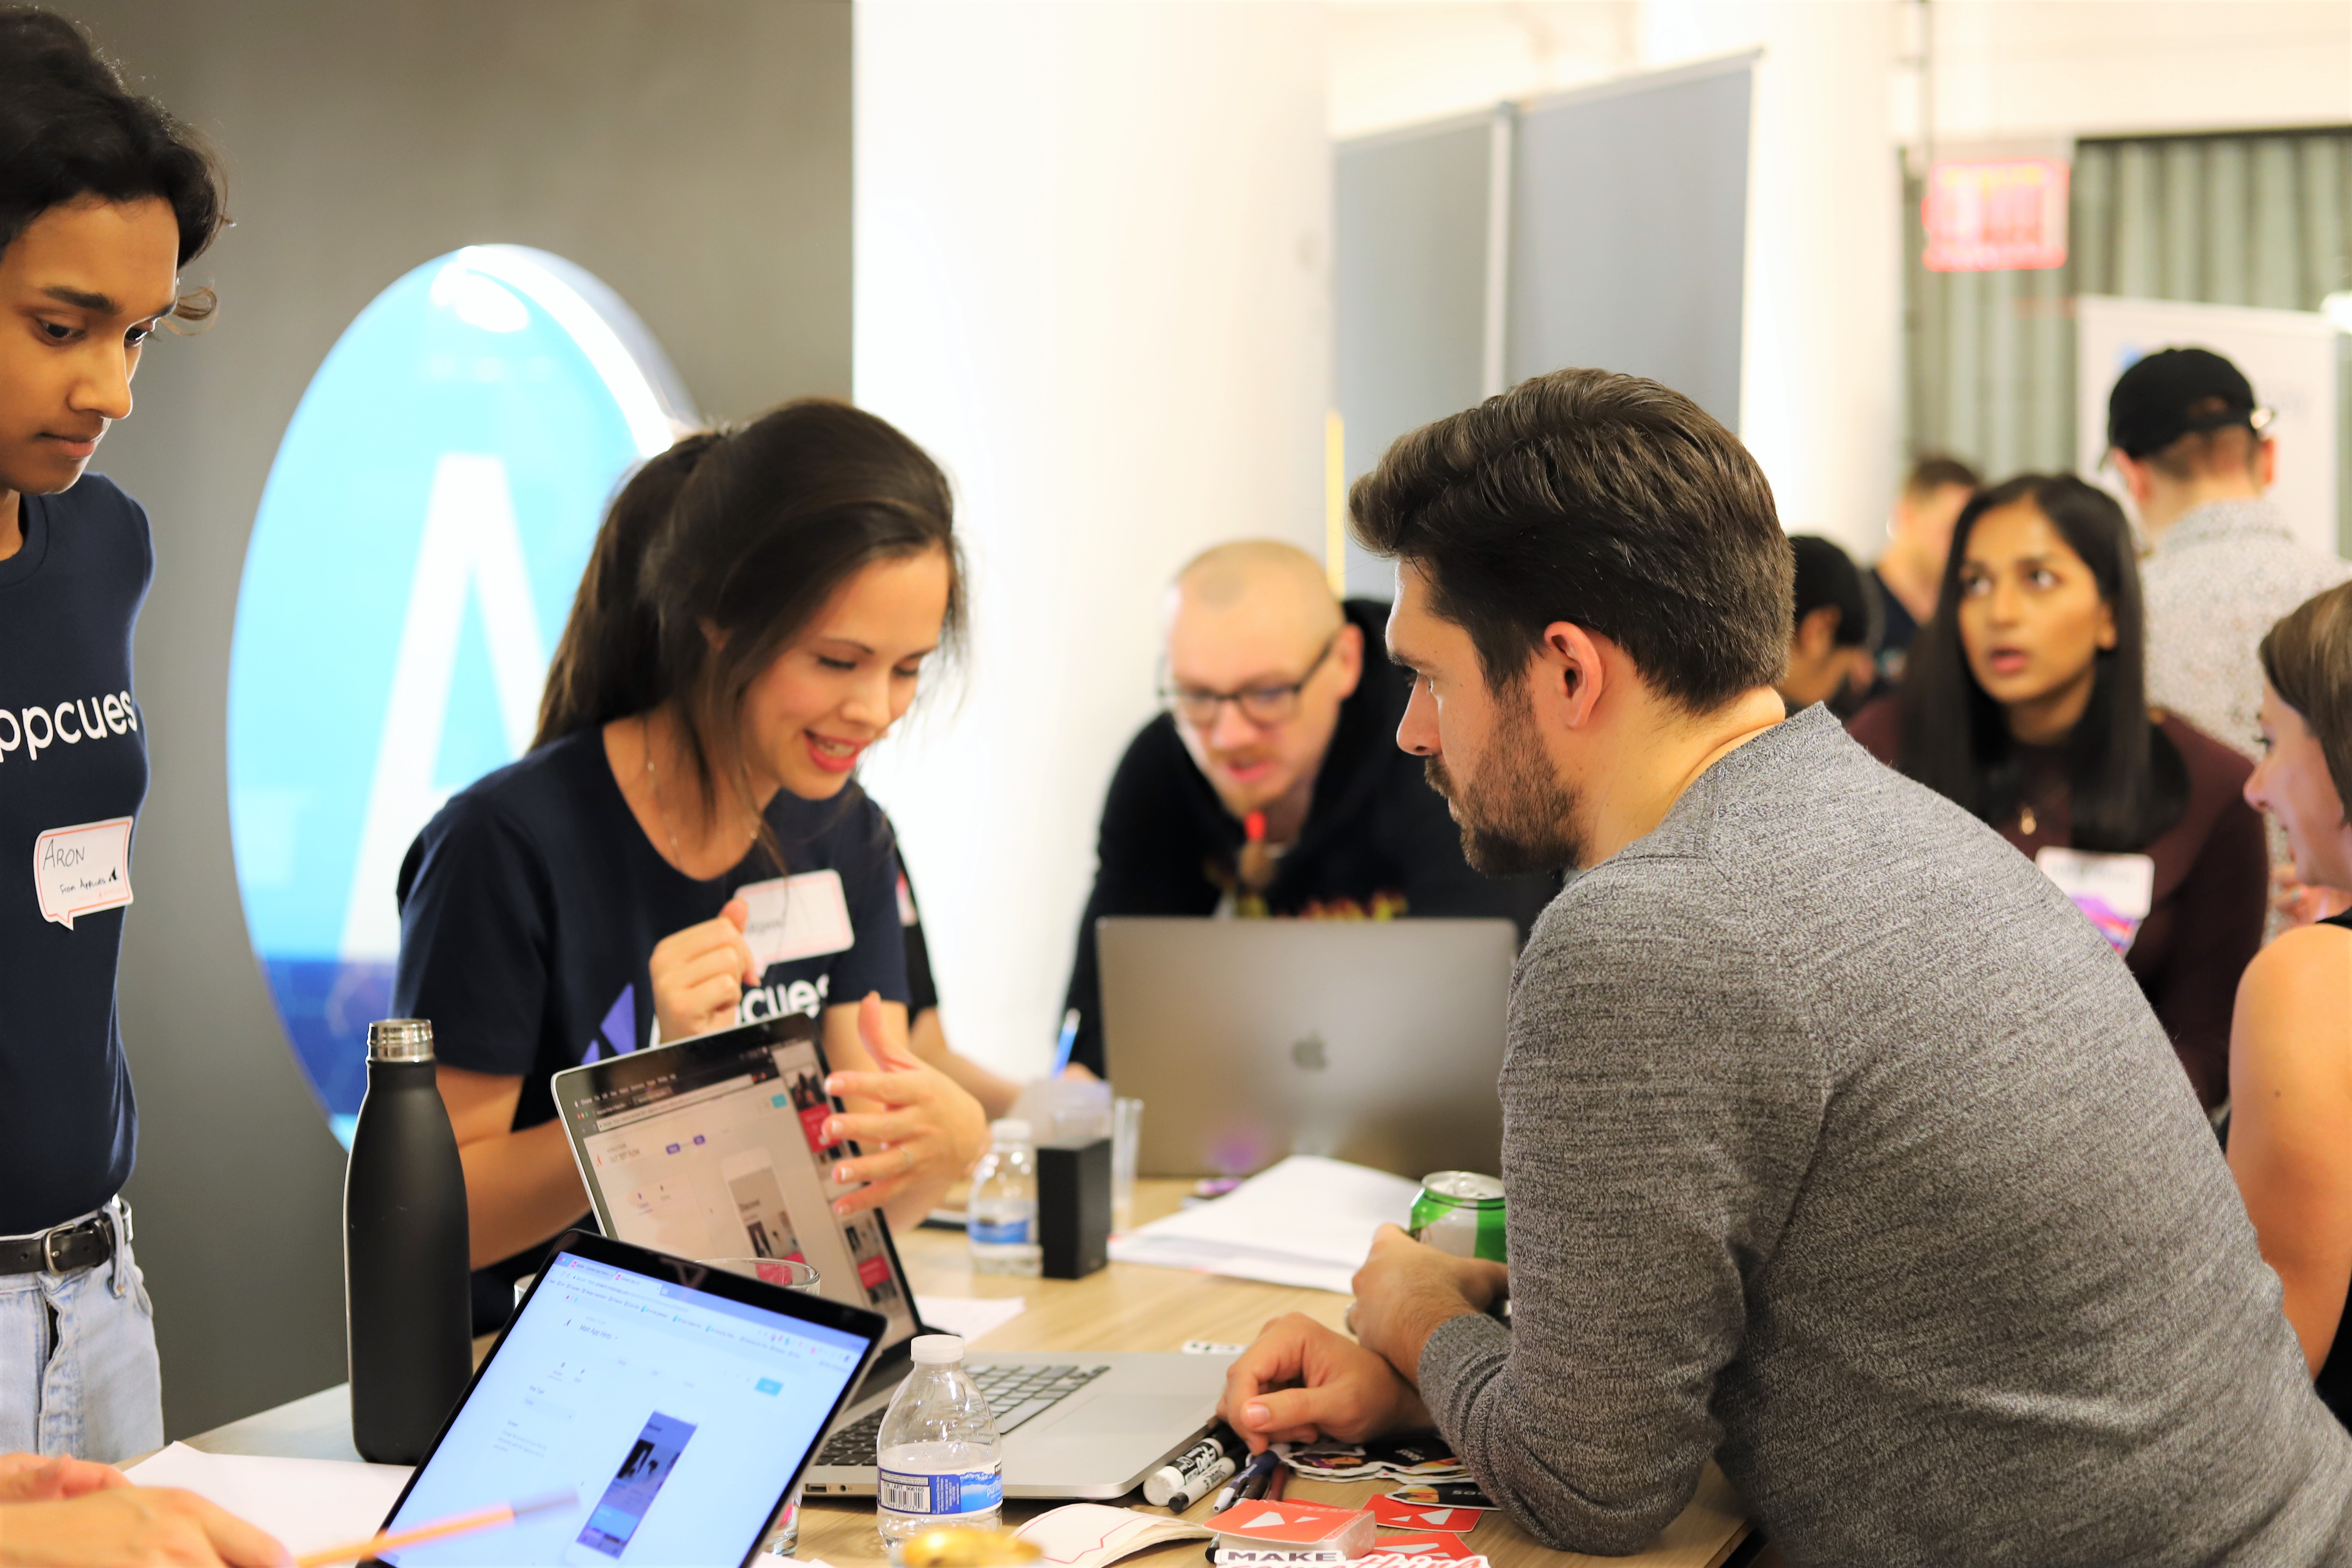 This is an image of people at  a user testing event hosted by Appcues called User Test Fest. Two engineers and developers are talking to a user tester and explaining features on a laptop.